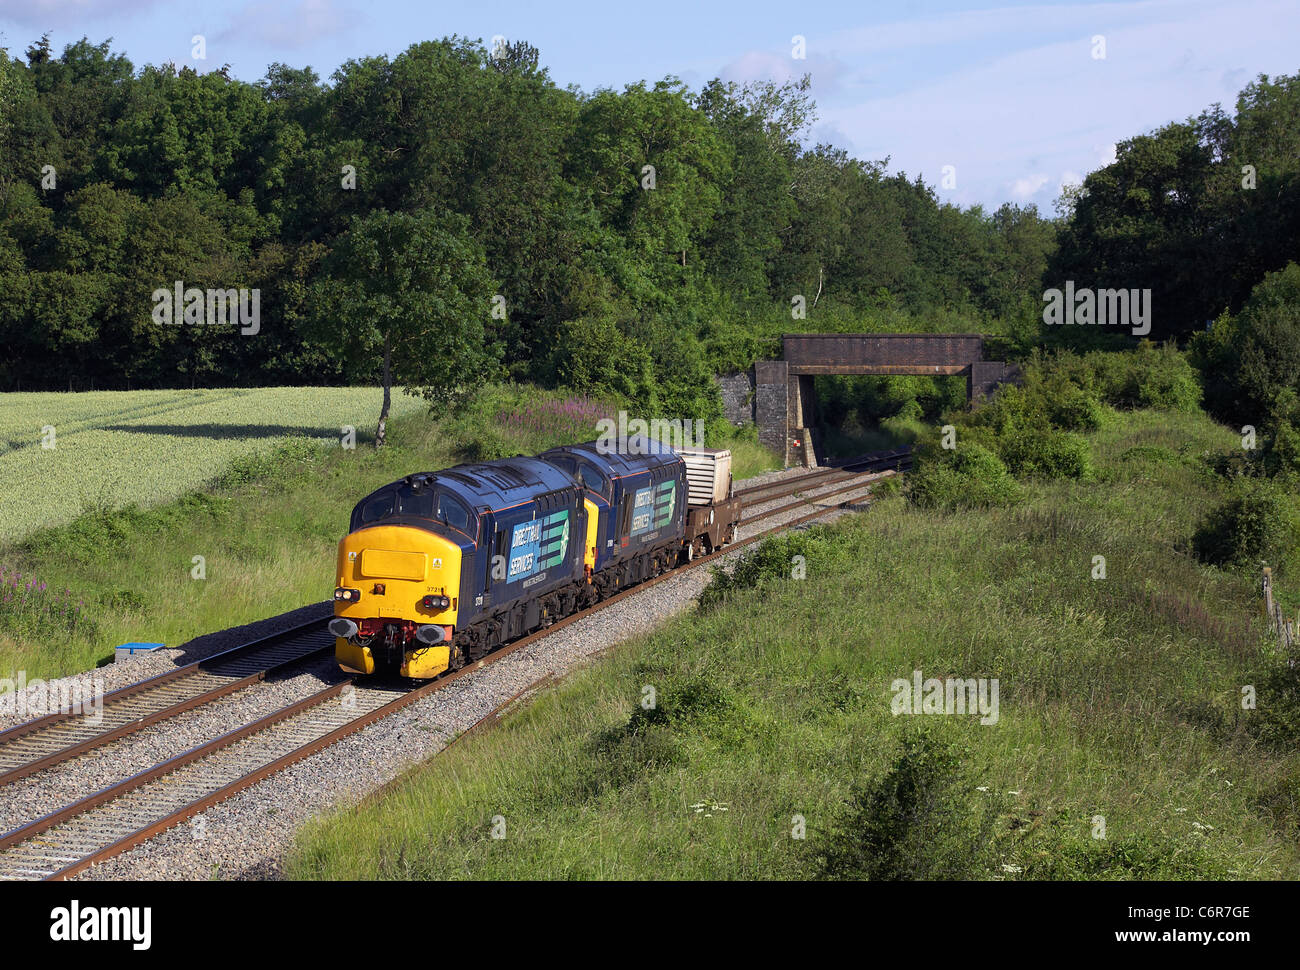 37218 & 37601 'Class 37 -Fifty' head through Croome in Worcestershire with 6V73 04:33 Crewe - Berkeley - Stock Image